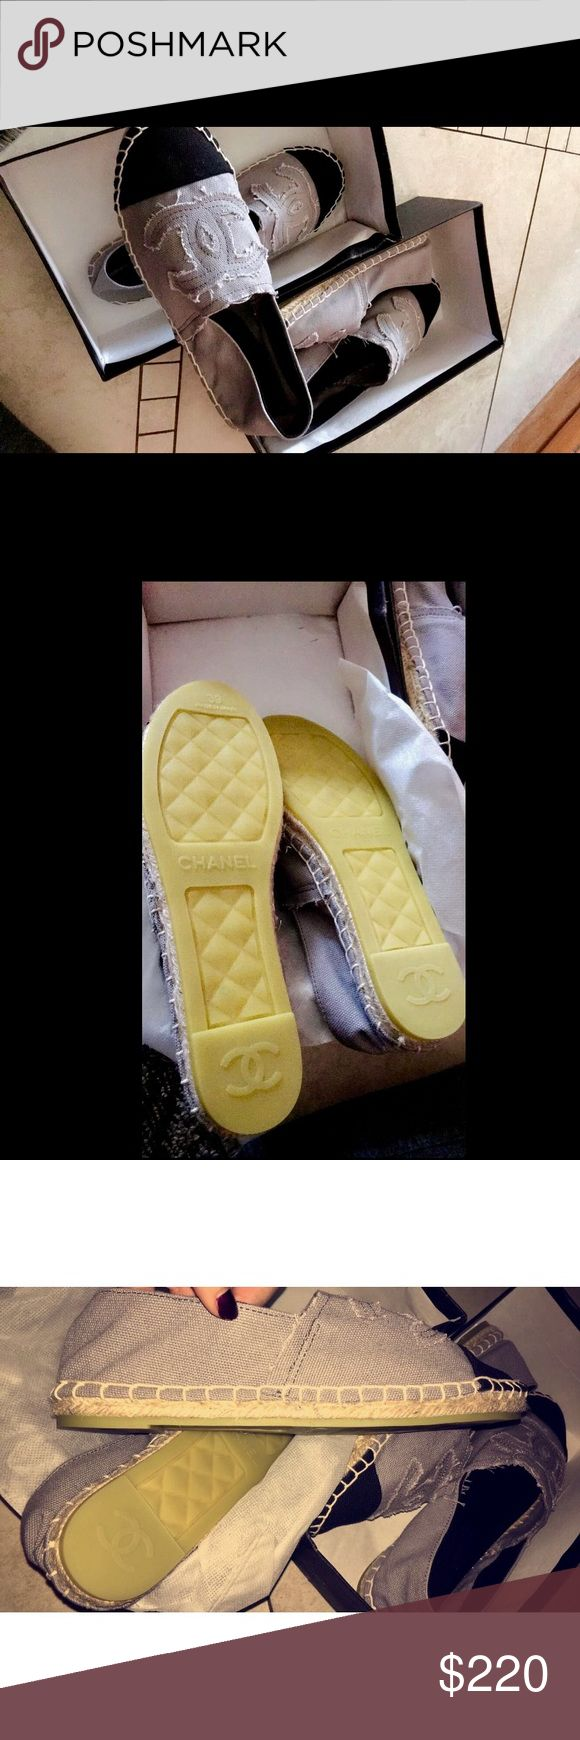 💜 CHANEL ESPADRILLES!!! One pair left, size is TRUE US 8 women! 💜 price reflects authenticity. Selling the purple not black CHANEL Shoes Espadrilles